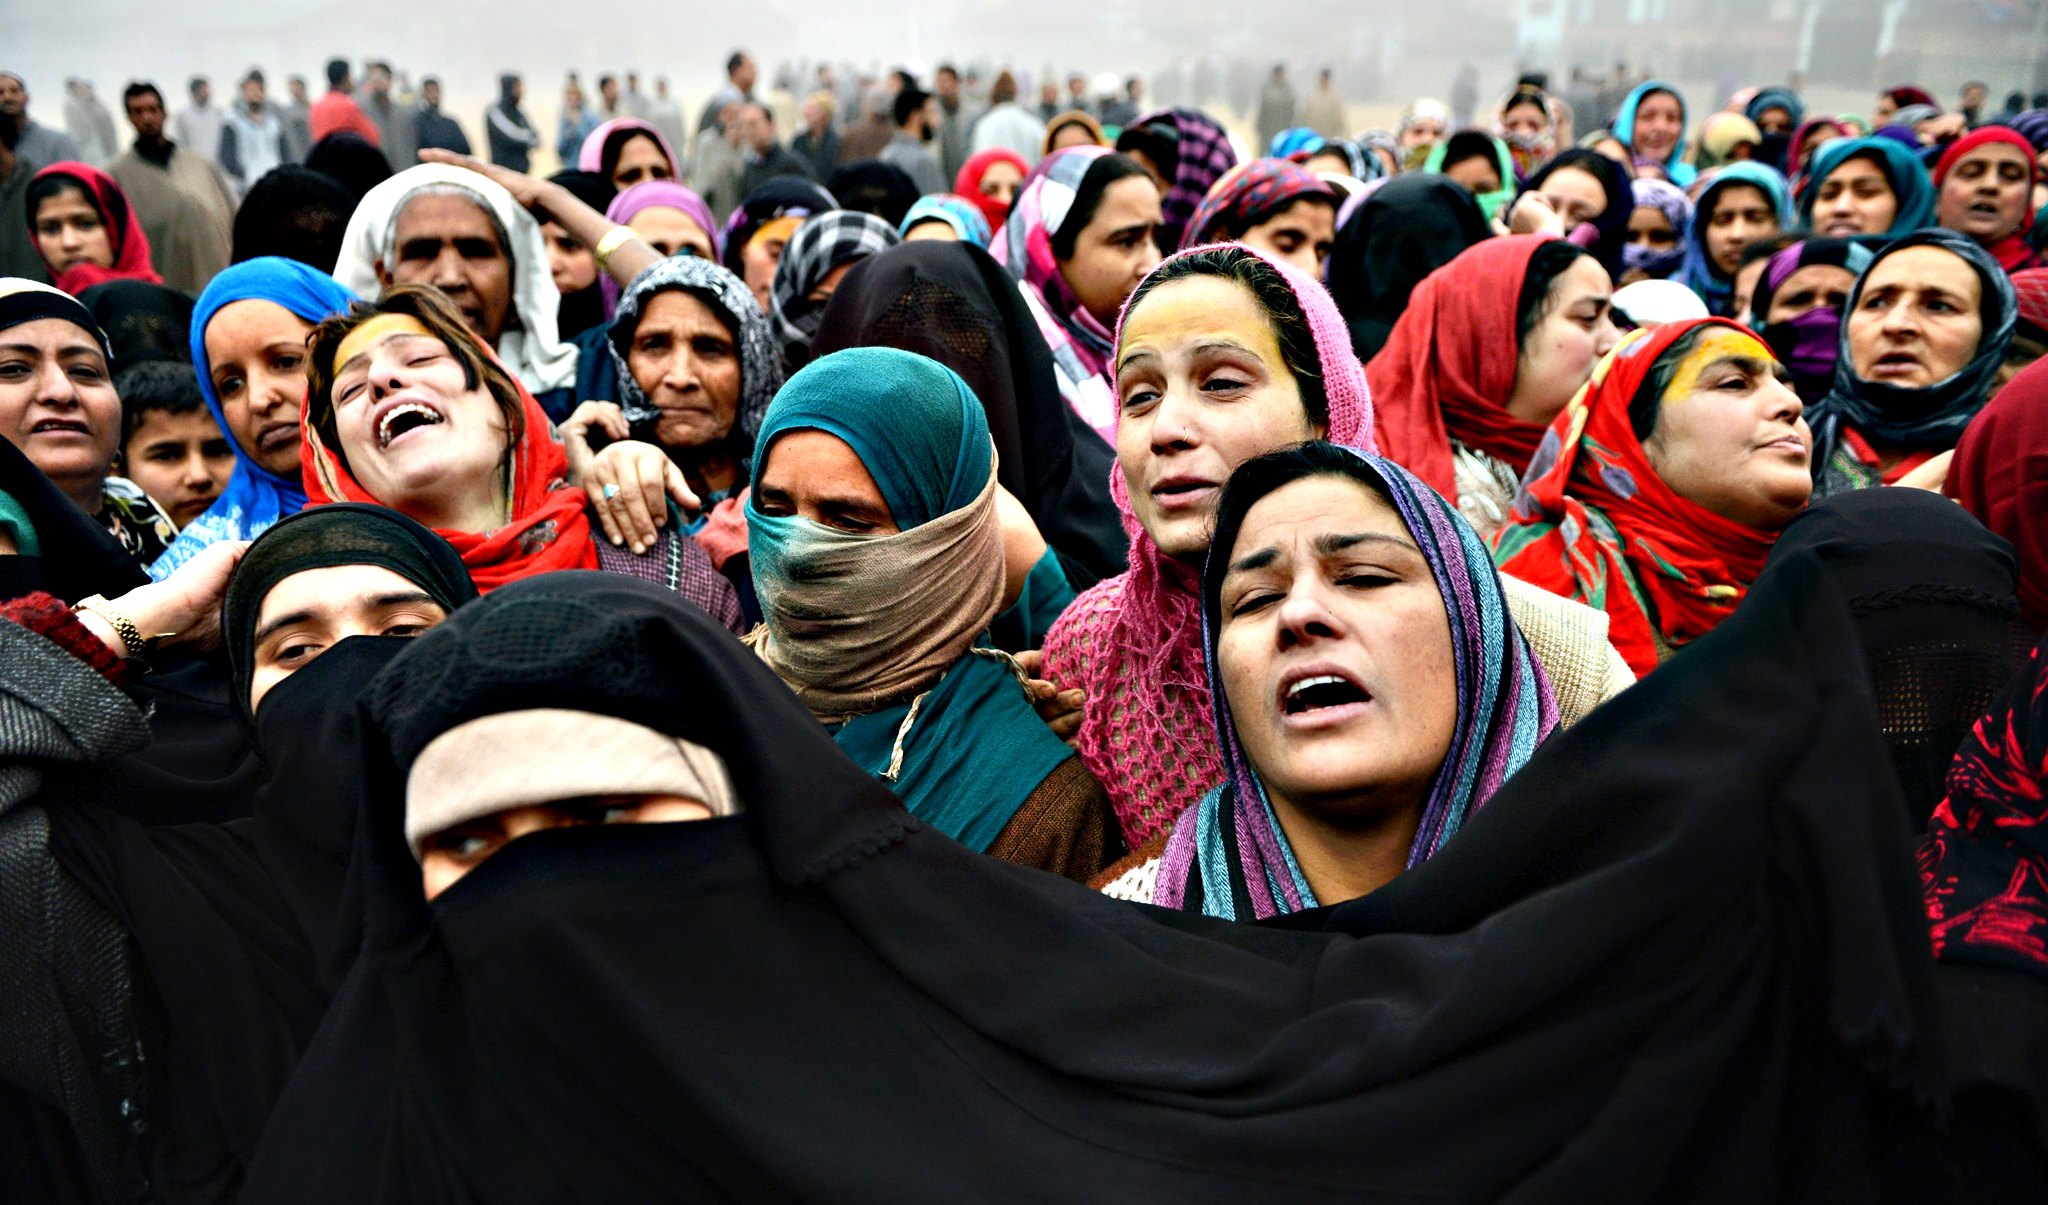 Kashmiri villagers mourn at a funeral procession for suspected rebels in the village of Bijbehara, in Anantnag district south of Srinagar, on Tuesday. Three suspected rebels were killed on Sunday, during an encounter with security forces in southern Kashmir